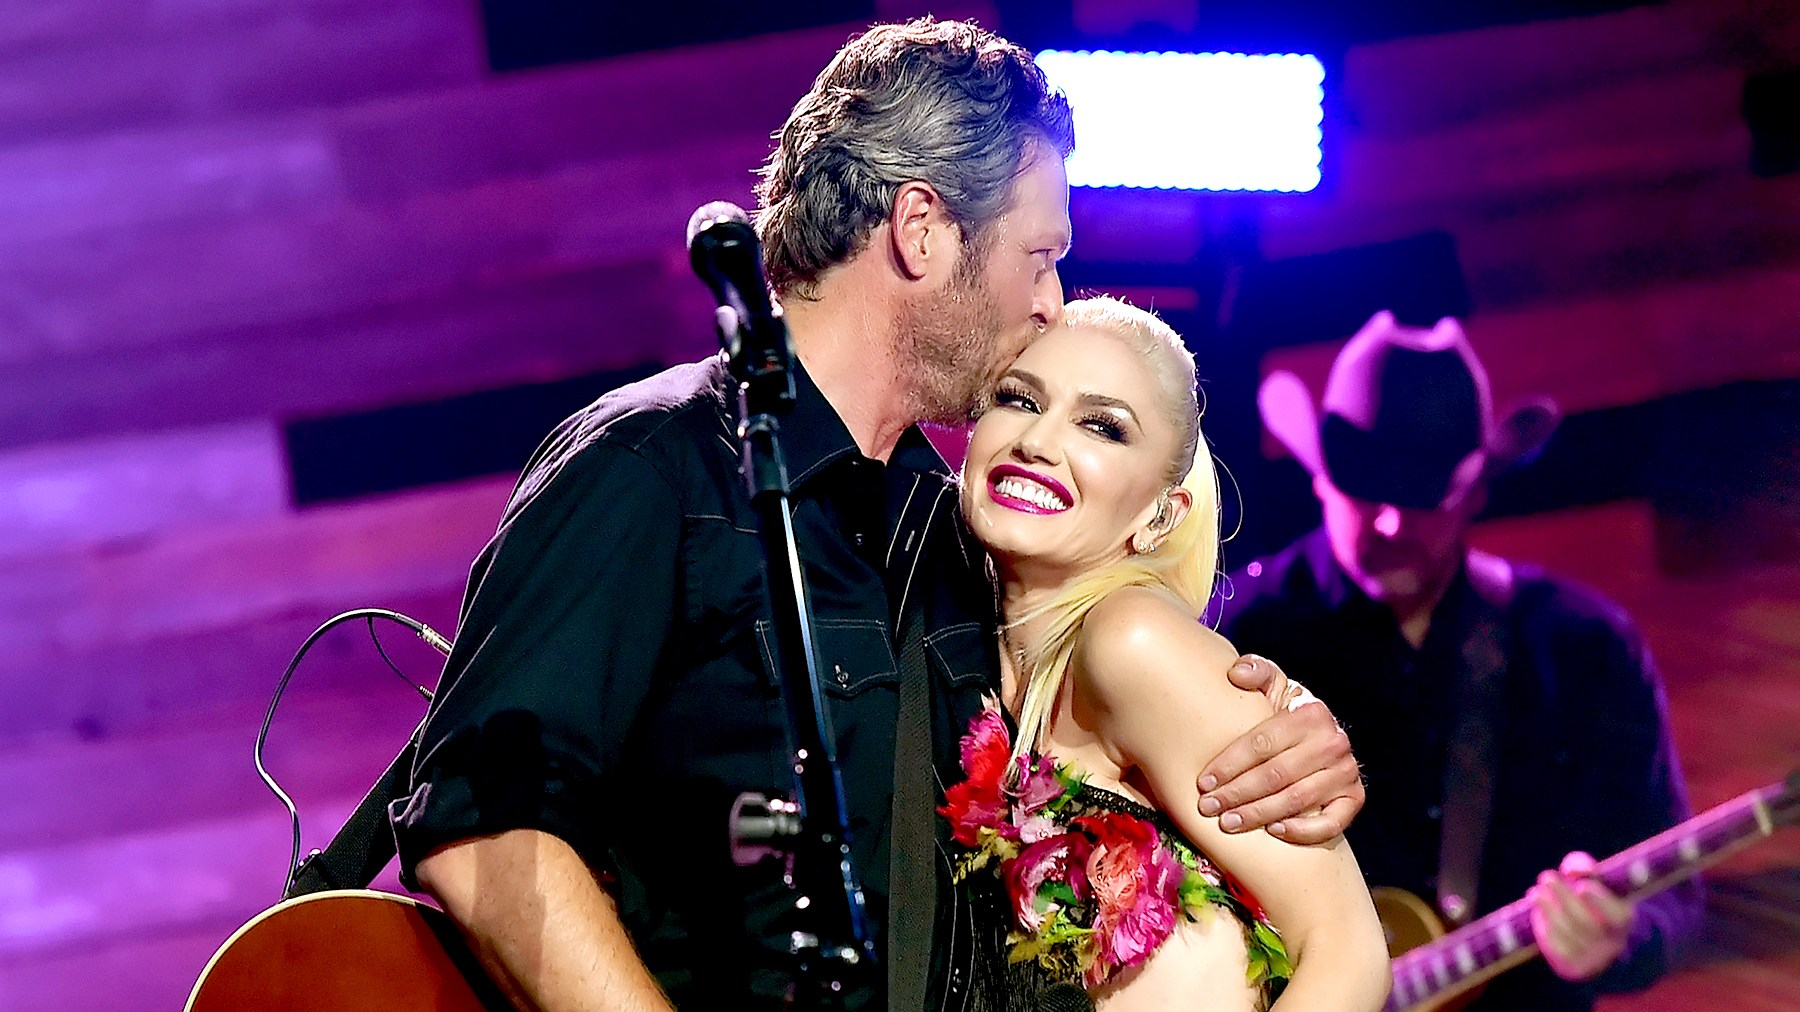 Blake Shelton and Gwen Stefani perform on the Honda Stage at the iHeartRadio Theater on May 9, 2016 in Burbank, California.